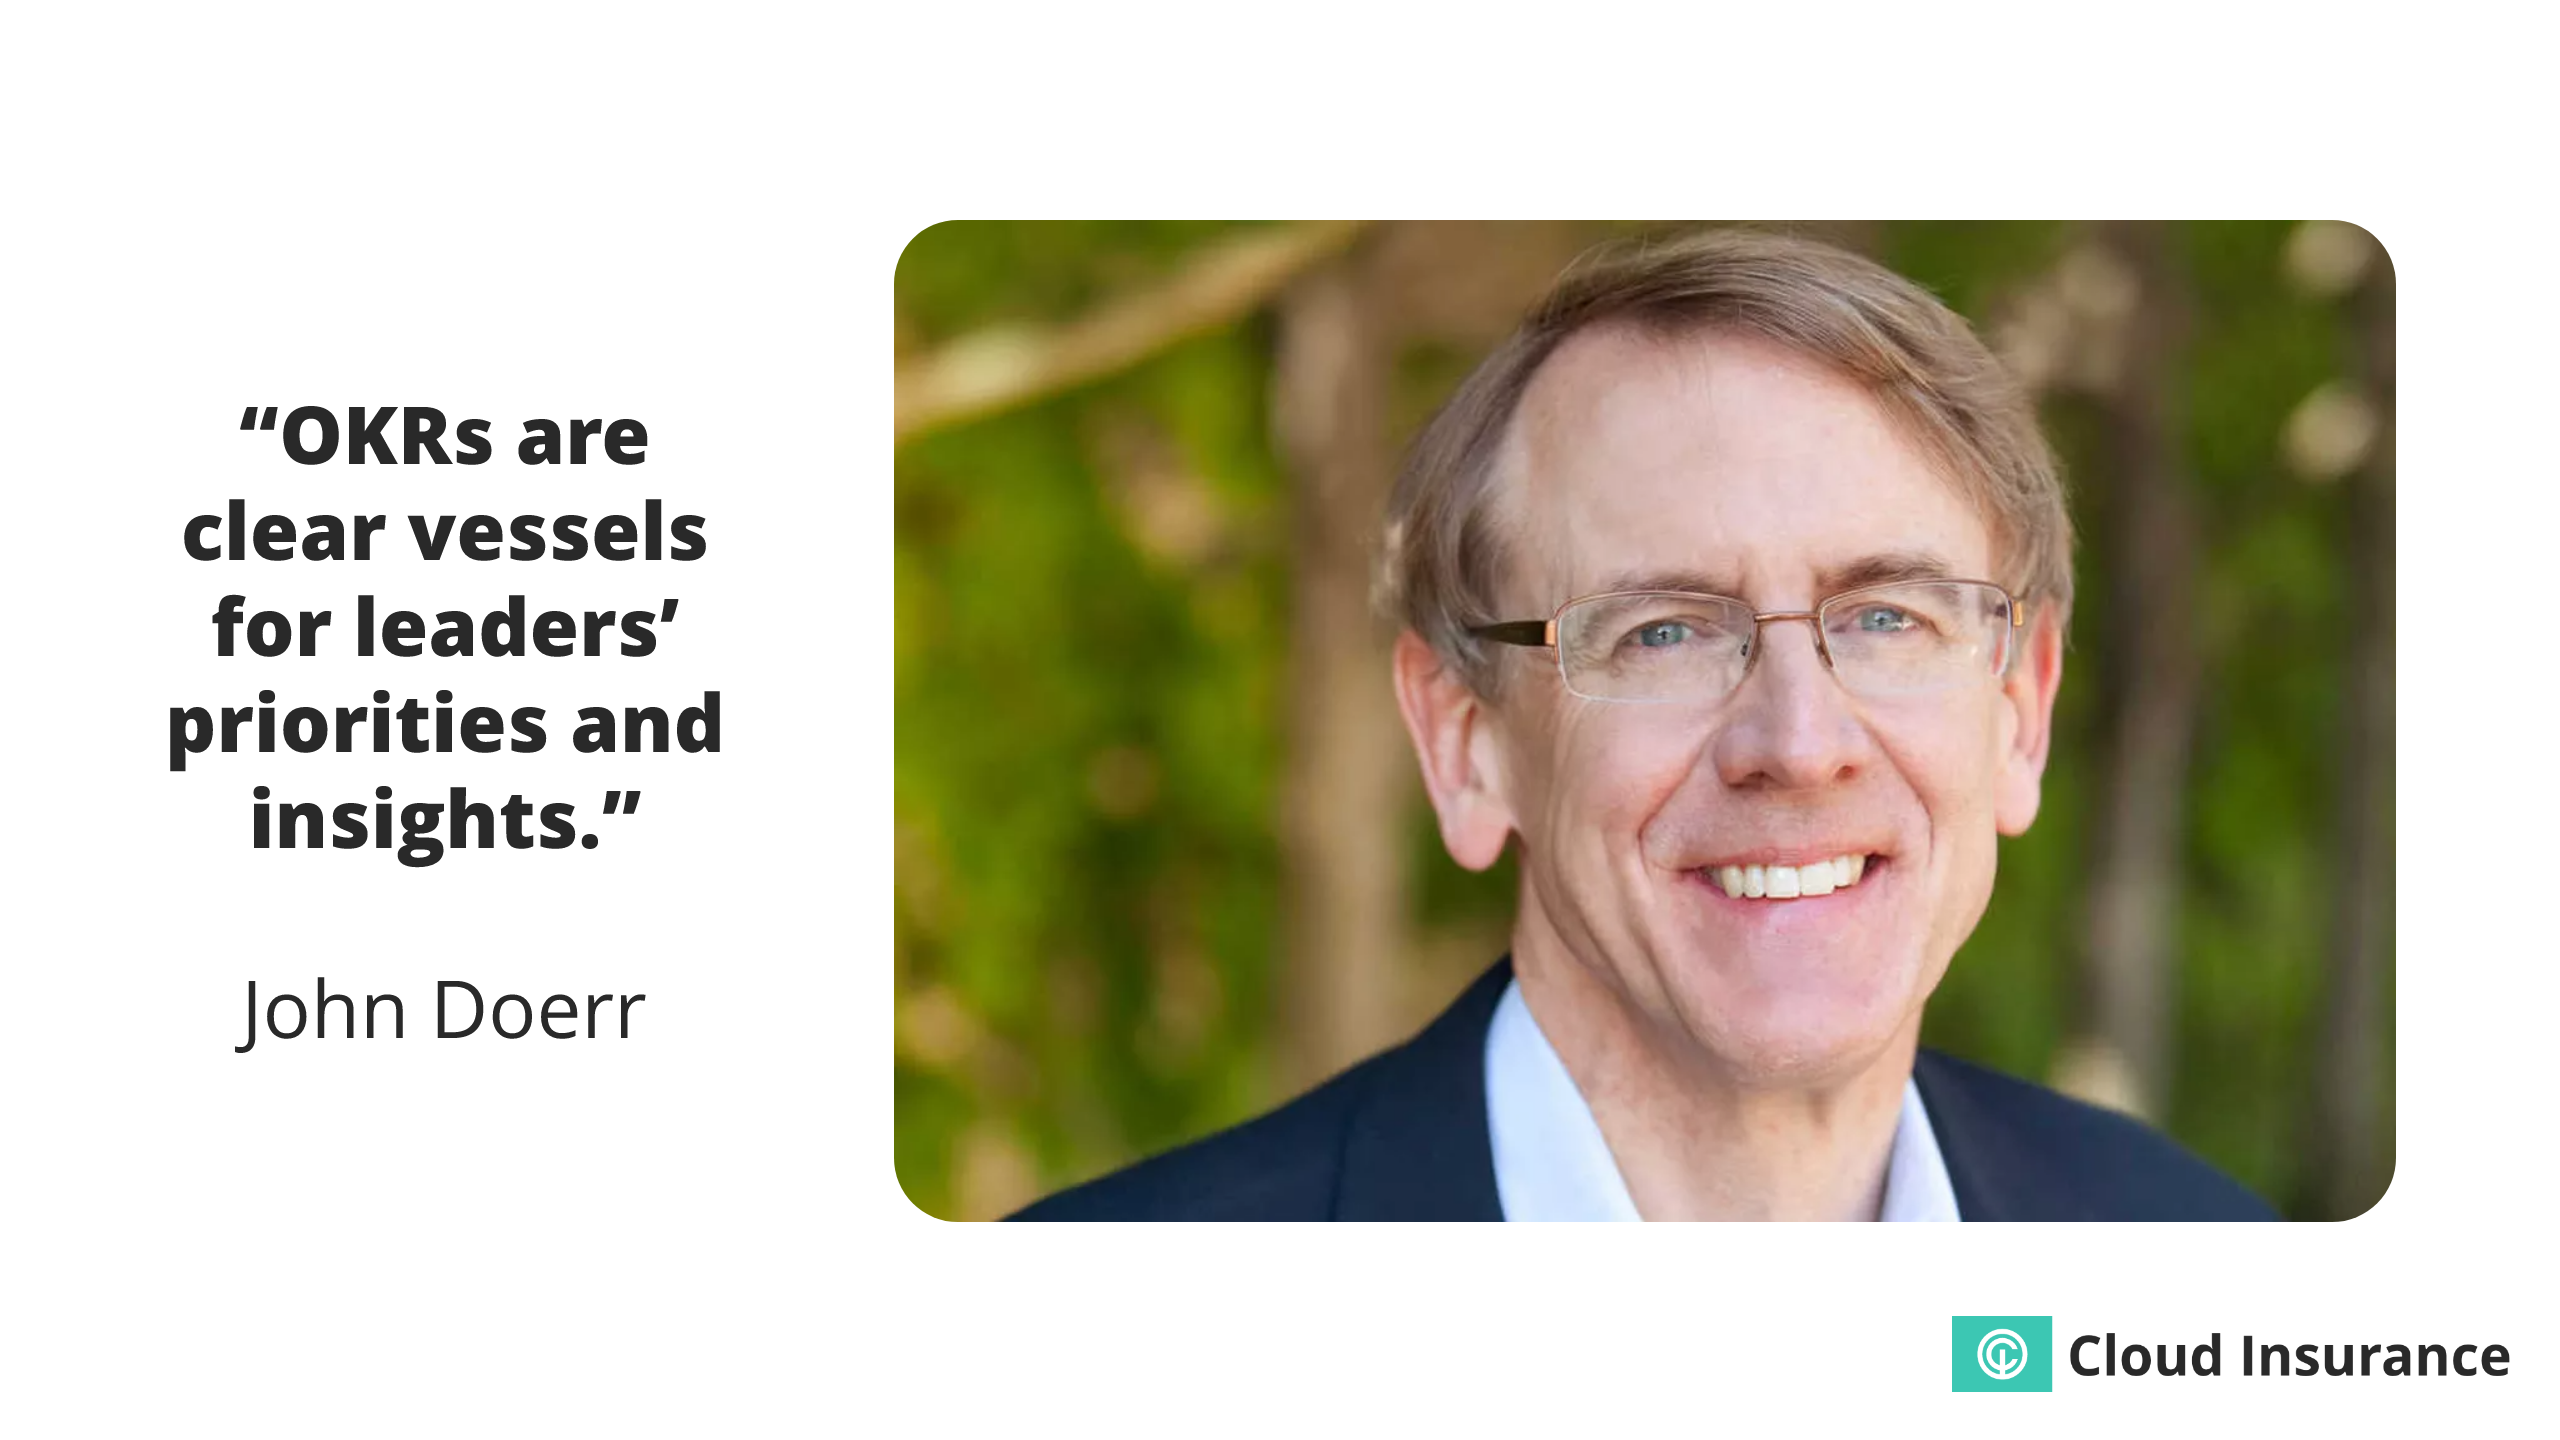 Quote from John Doerr.